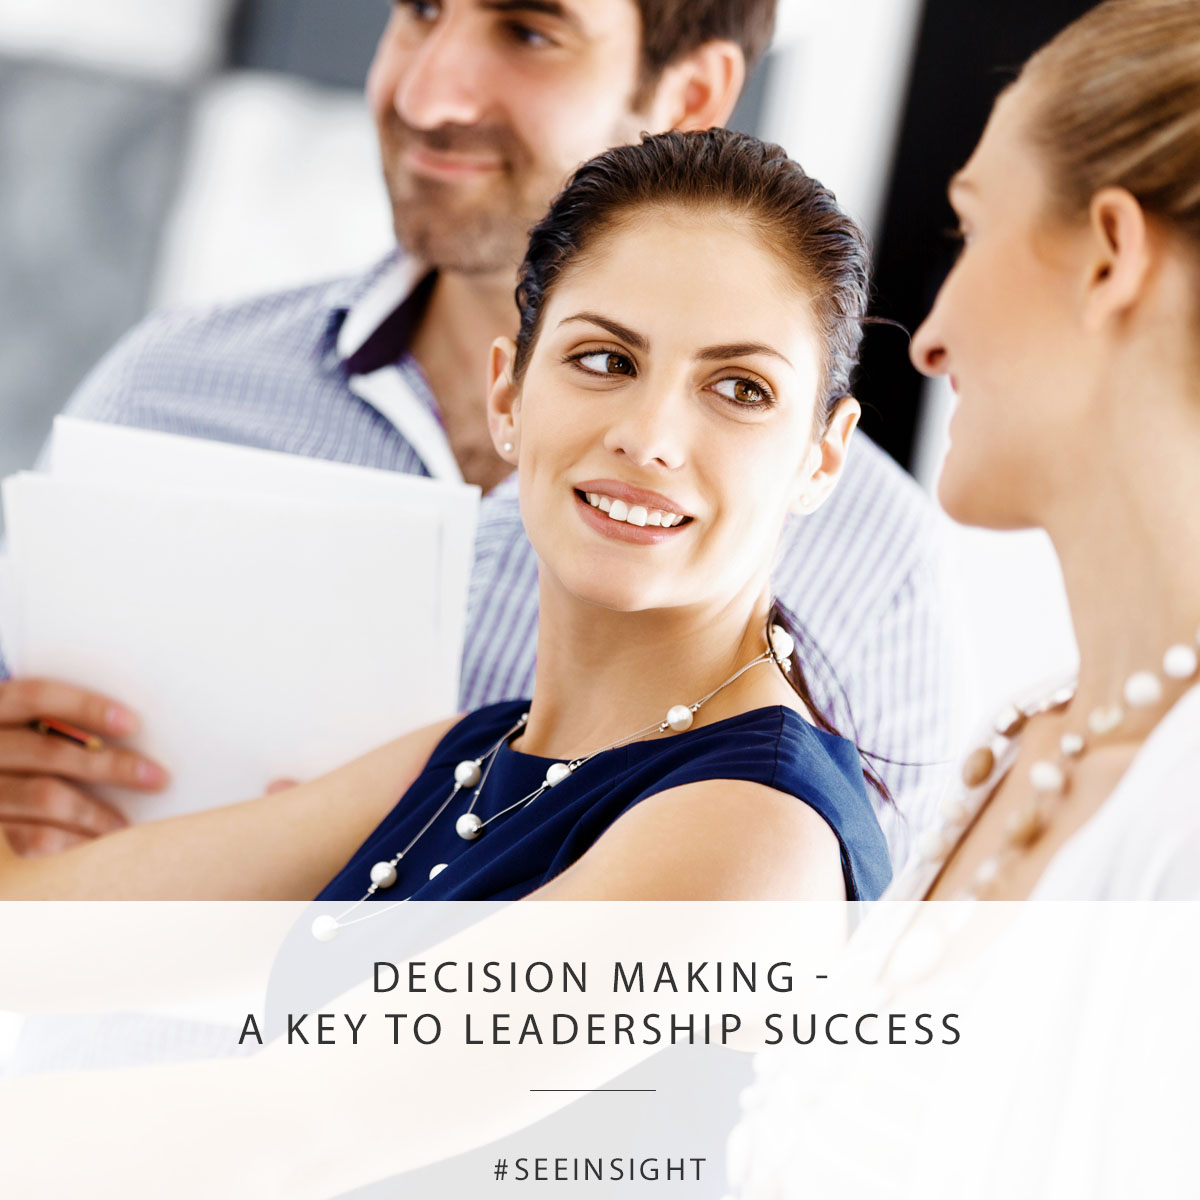 Decision Making - A Key to Leadership Success